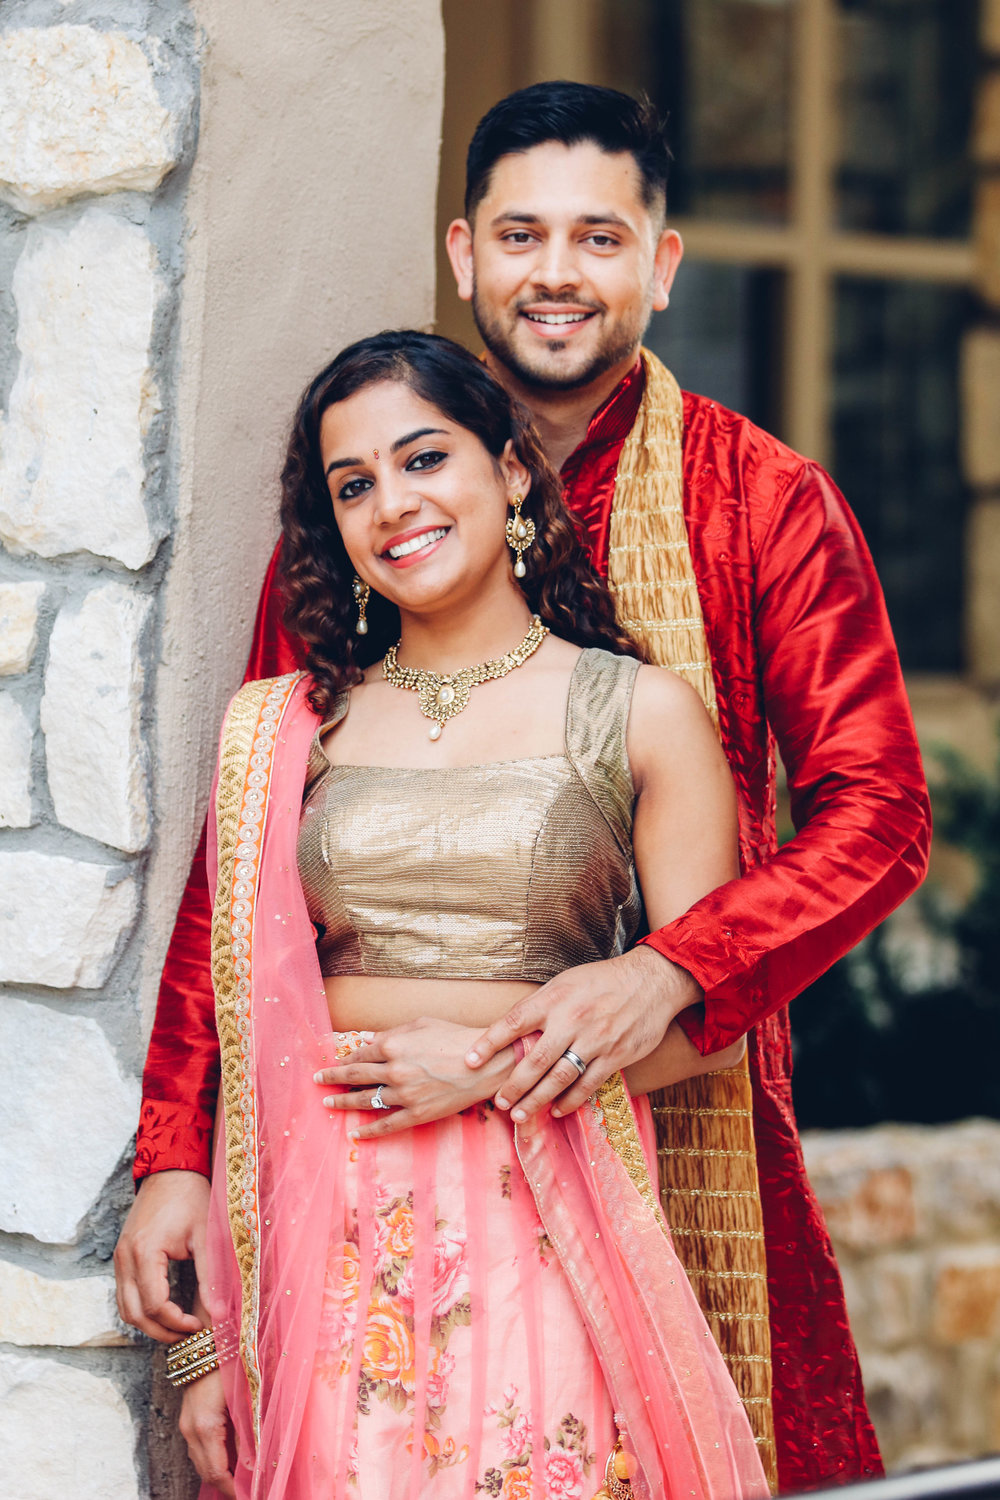 Indian Engagement - Adriatica in McKinney, TX